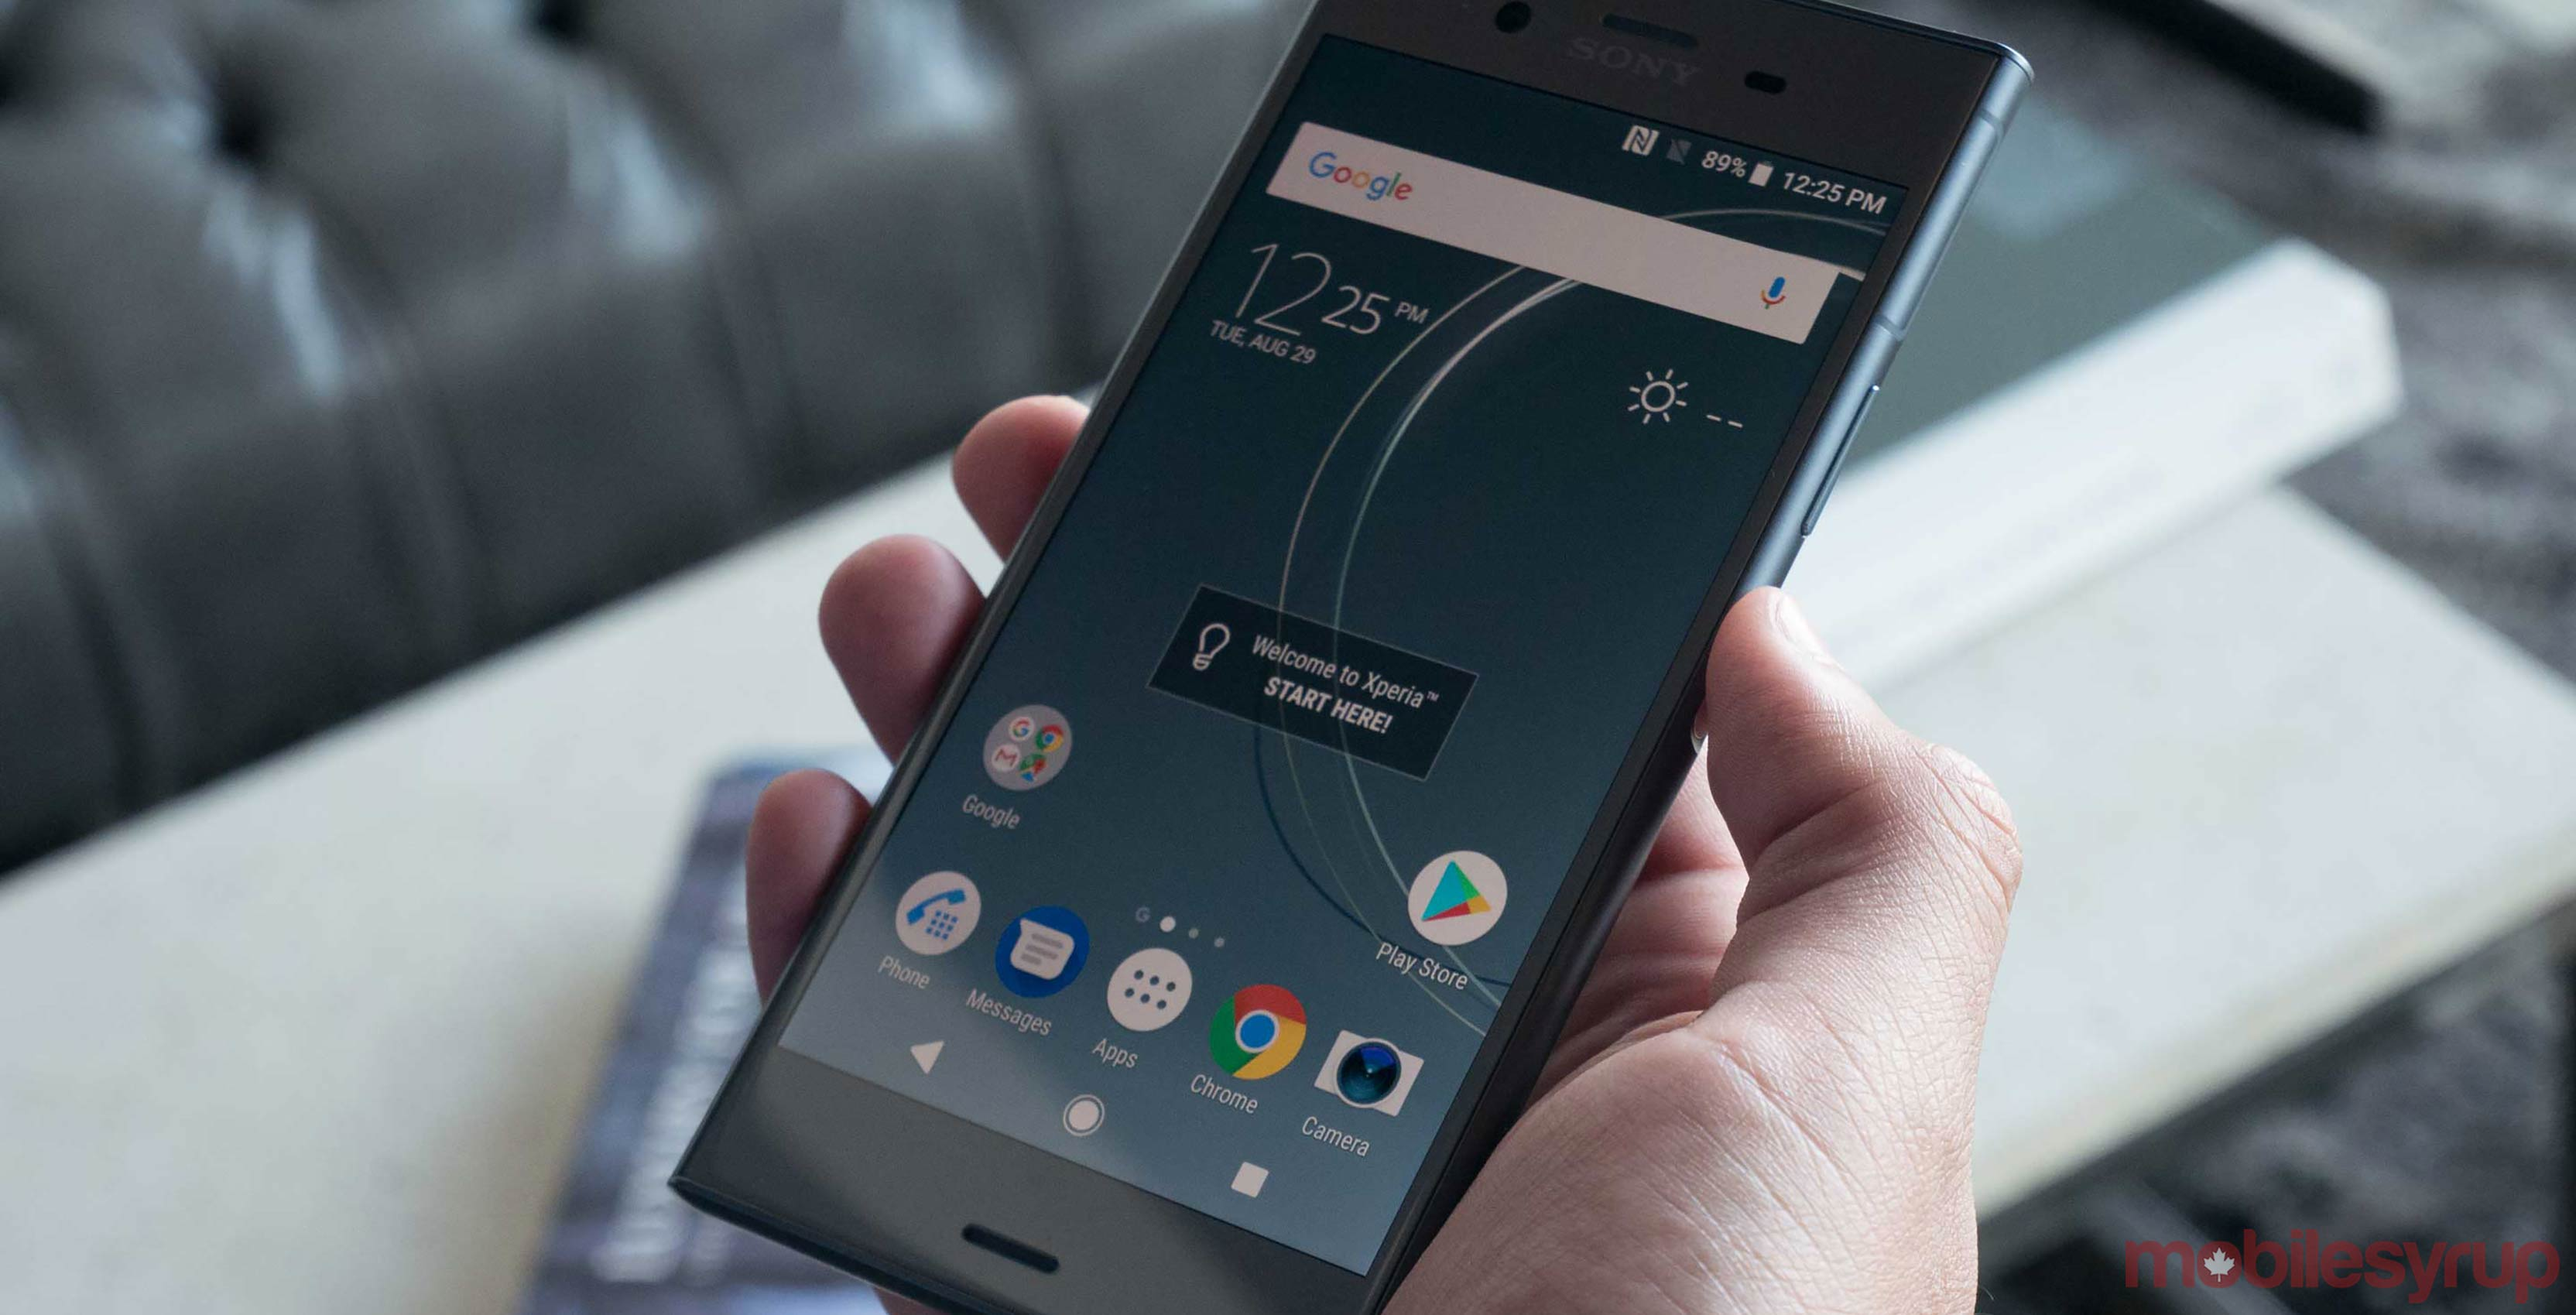 Sony Xperia XZ1 in hand